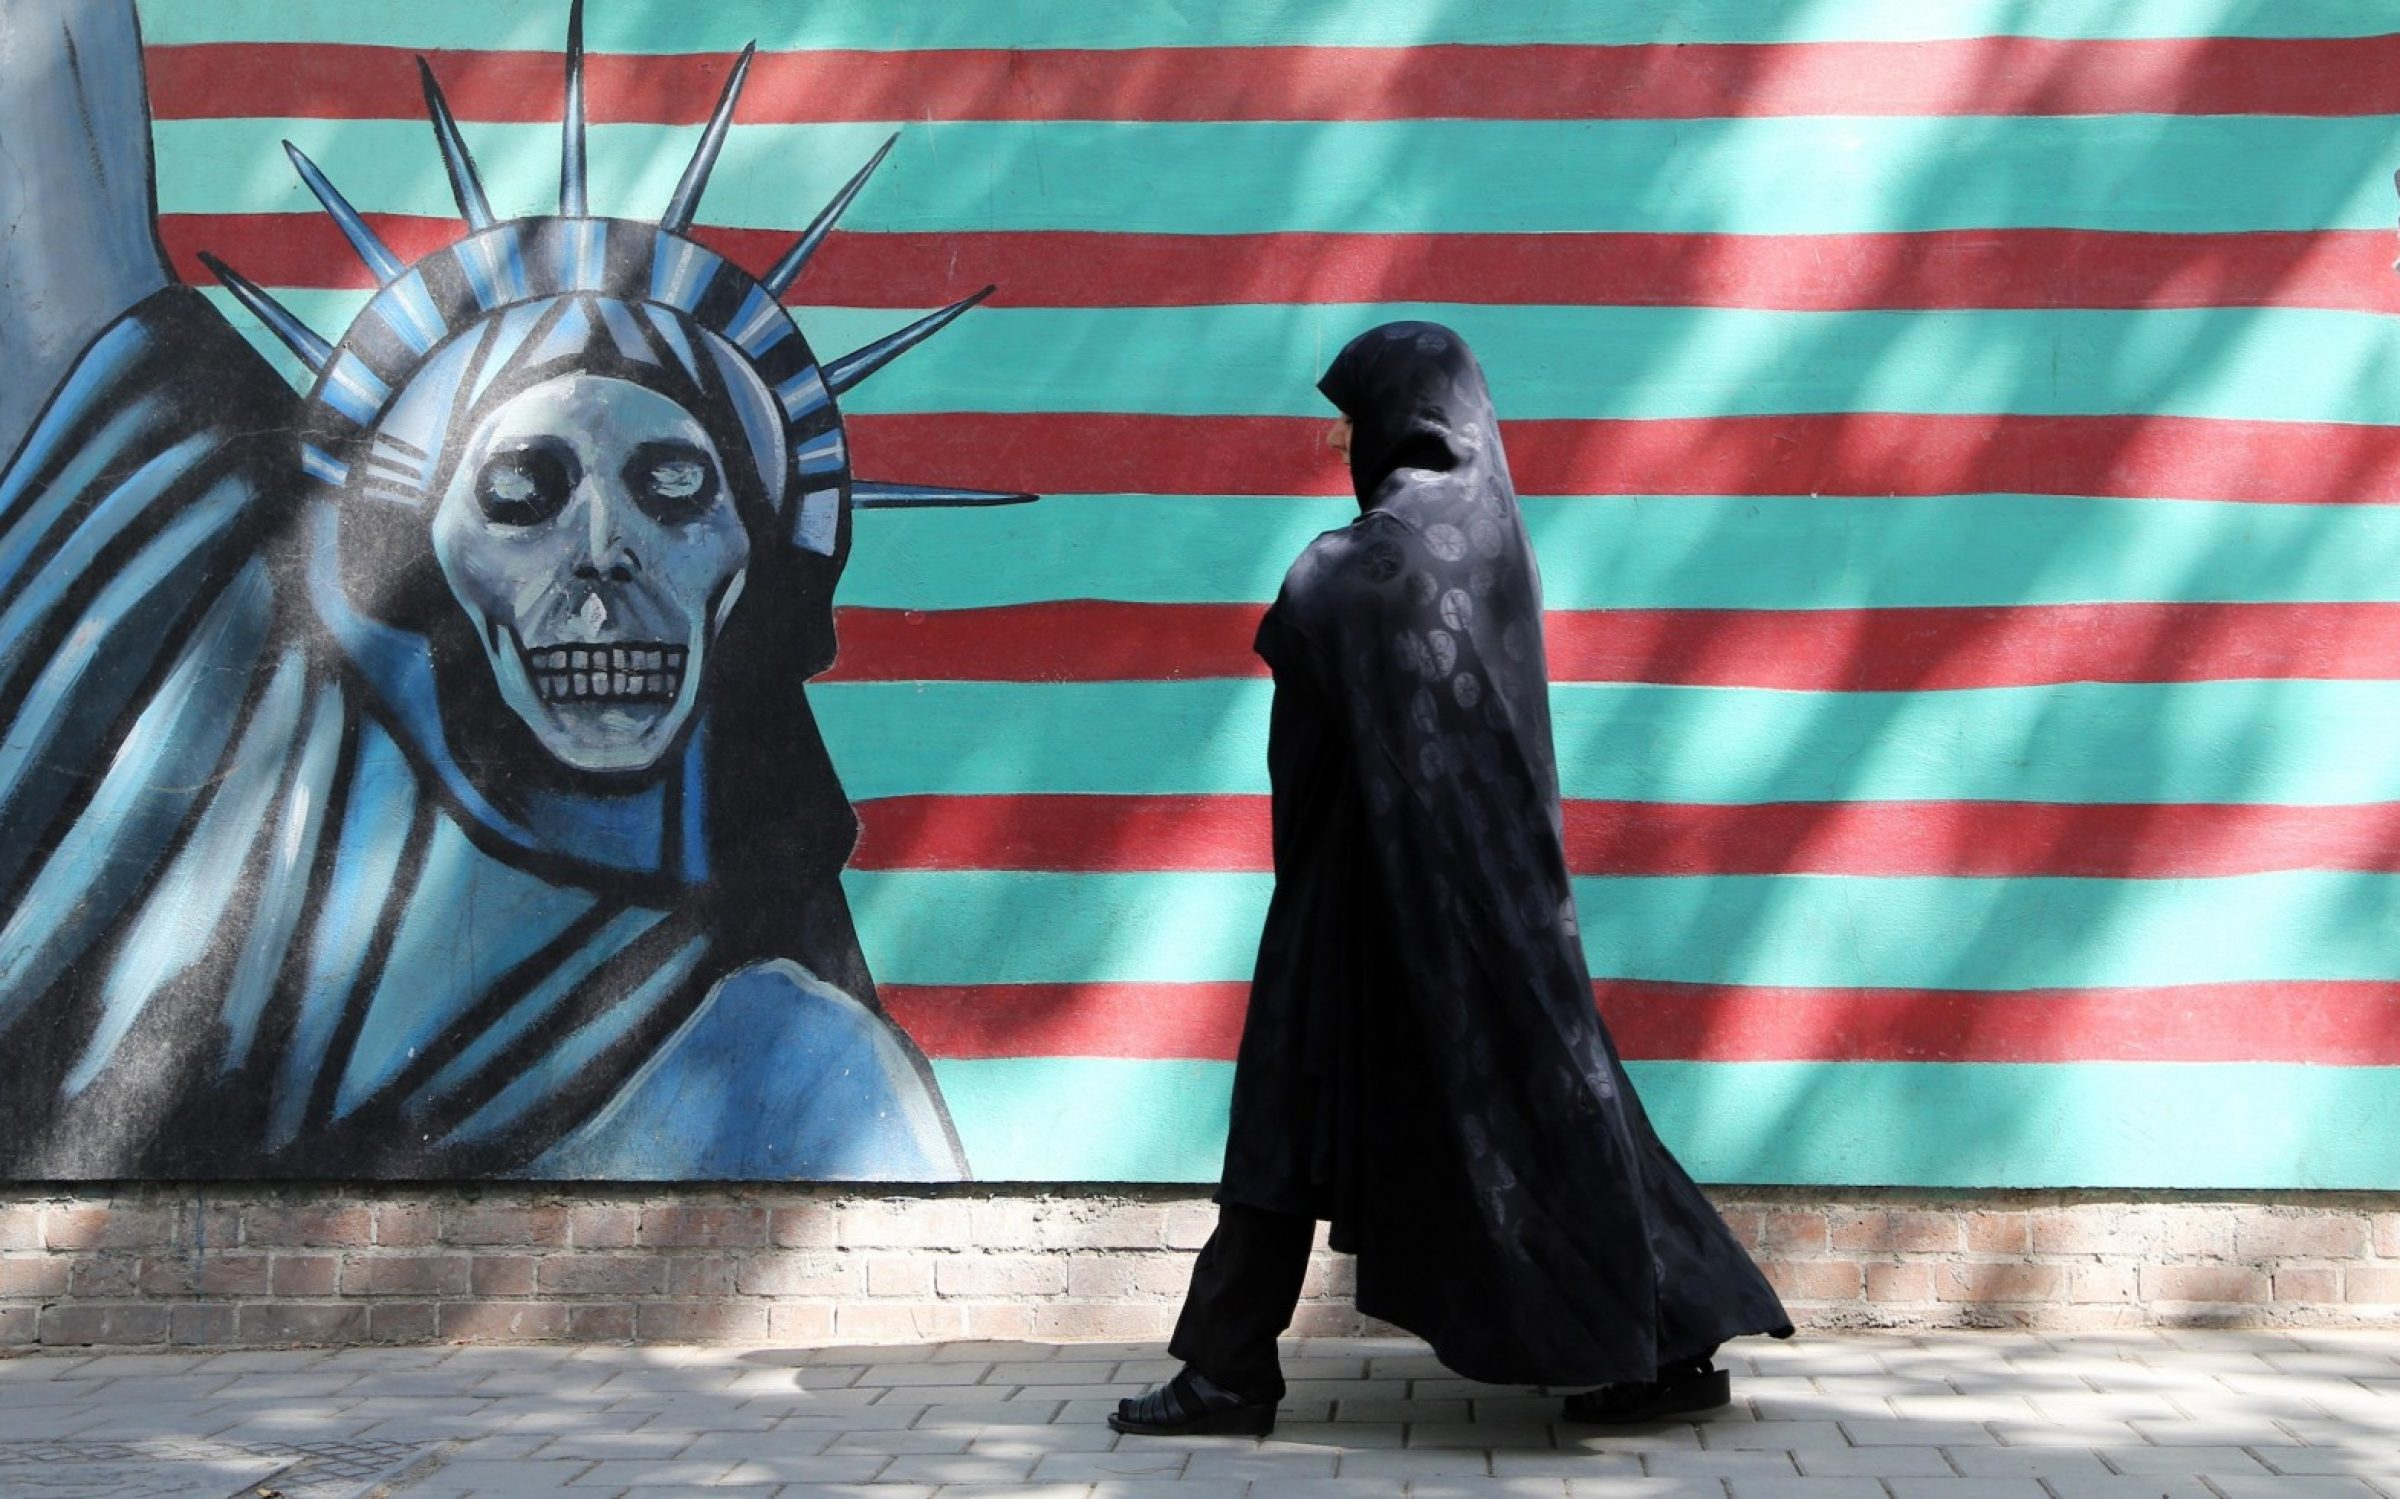 An Iranian woman walks past an anti-US mural depicting the Statue of Liberty on the wall of the former American embassy in Tehran.